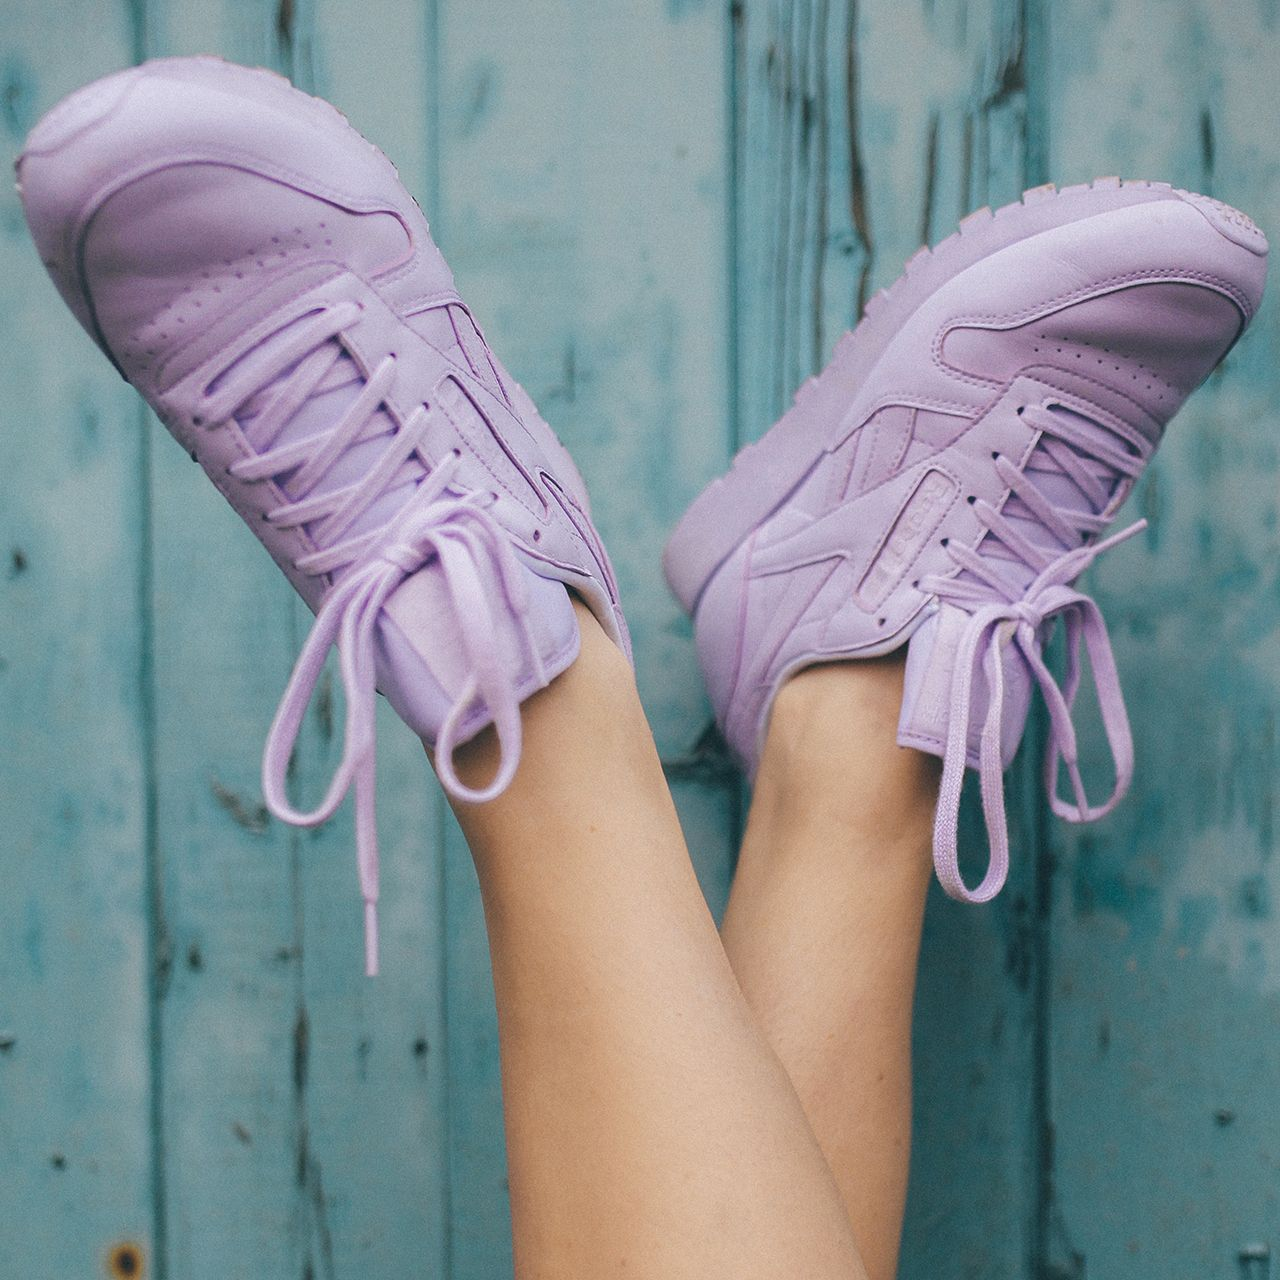 6e1c02884e1270 Pastel hues from the Women s Reebok Classics x Face Stockholm collection.  More styles available.